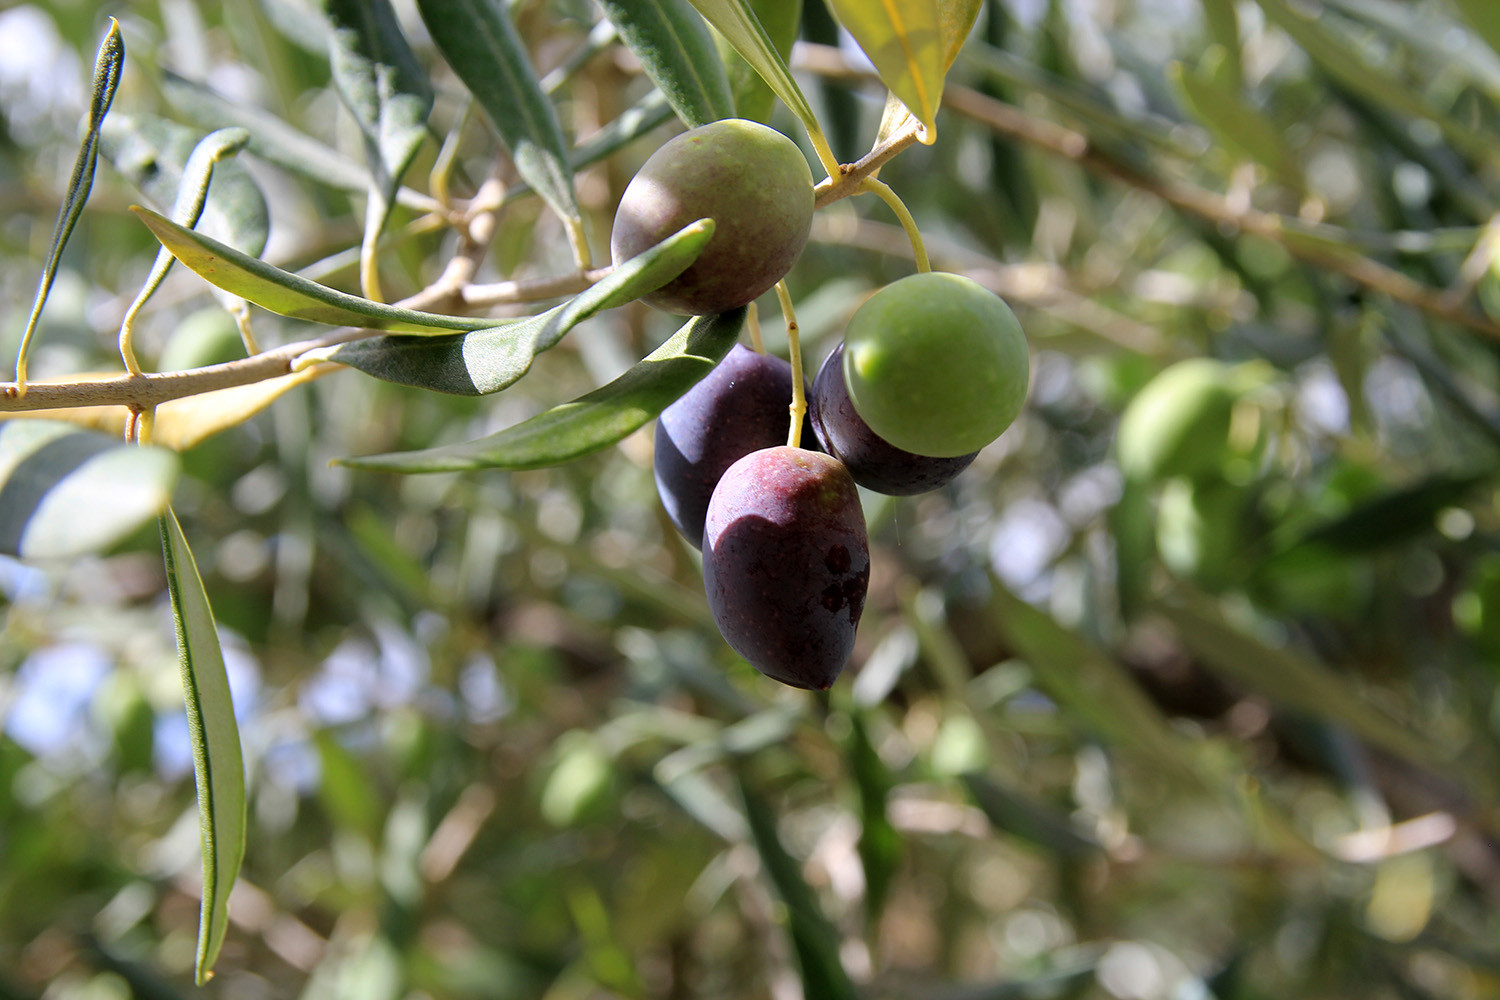 Detail of the olive yard